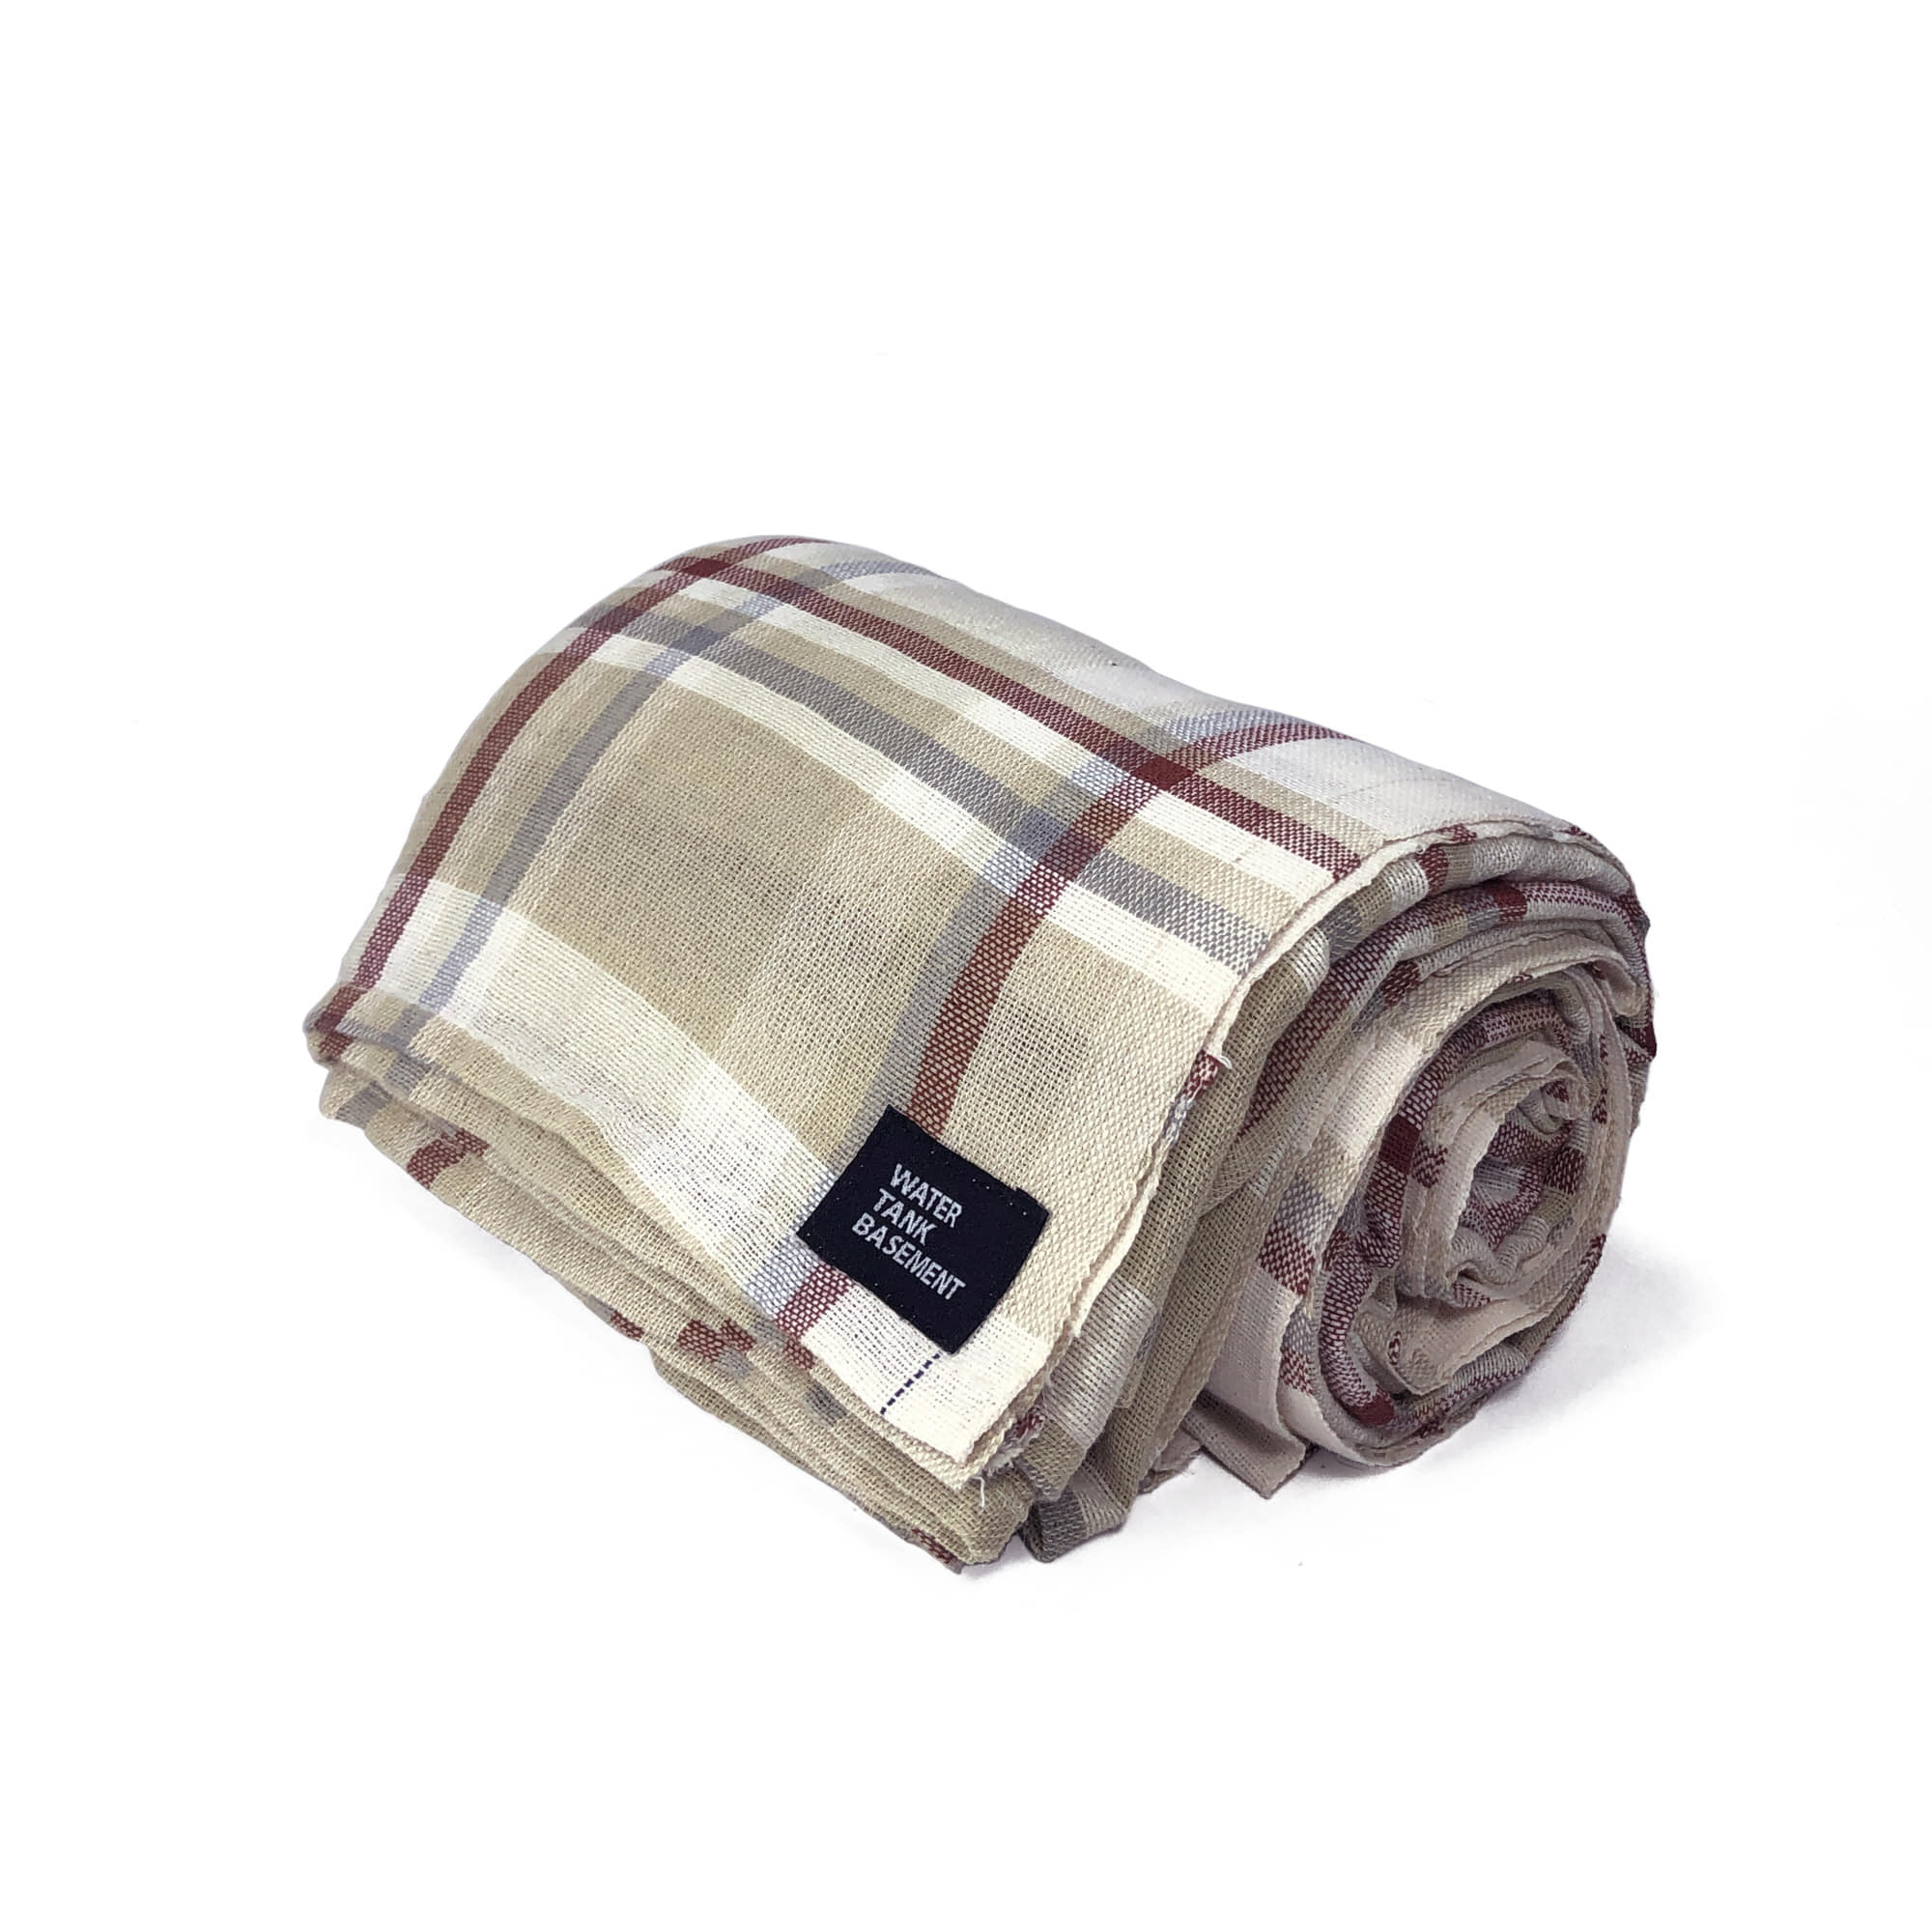 COTTON COVER - tartan beige